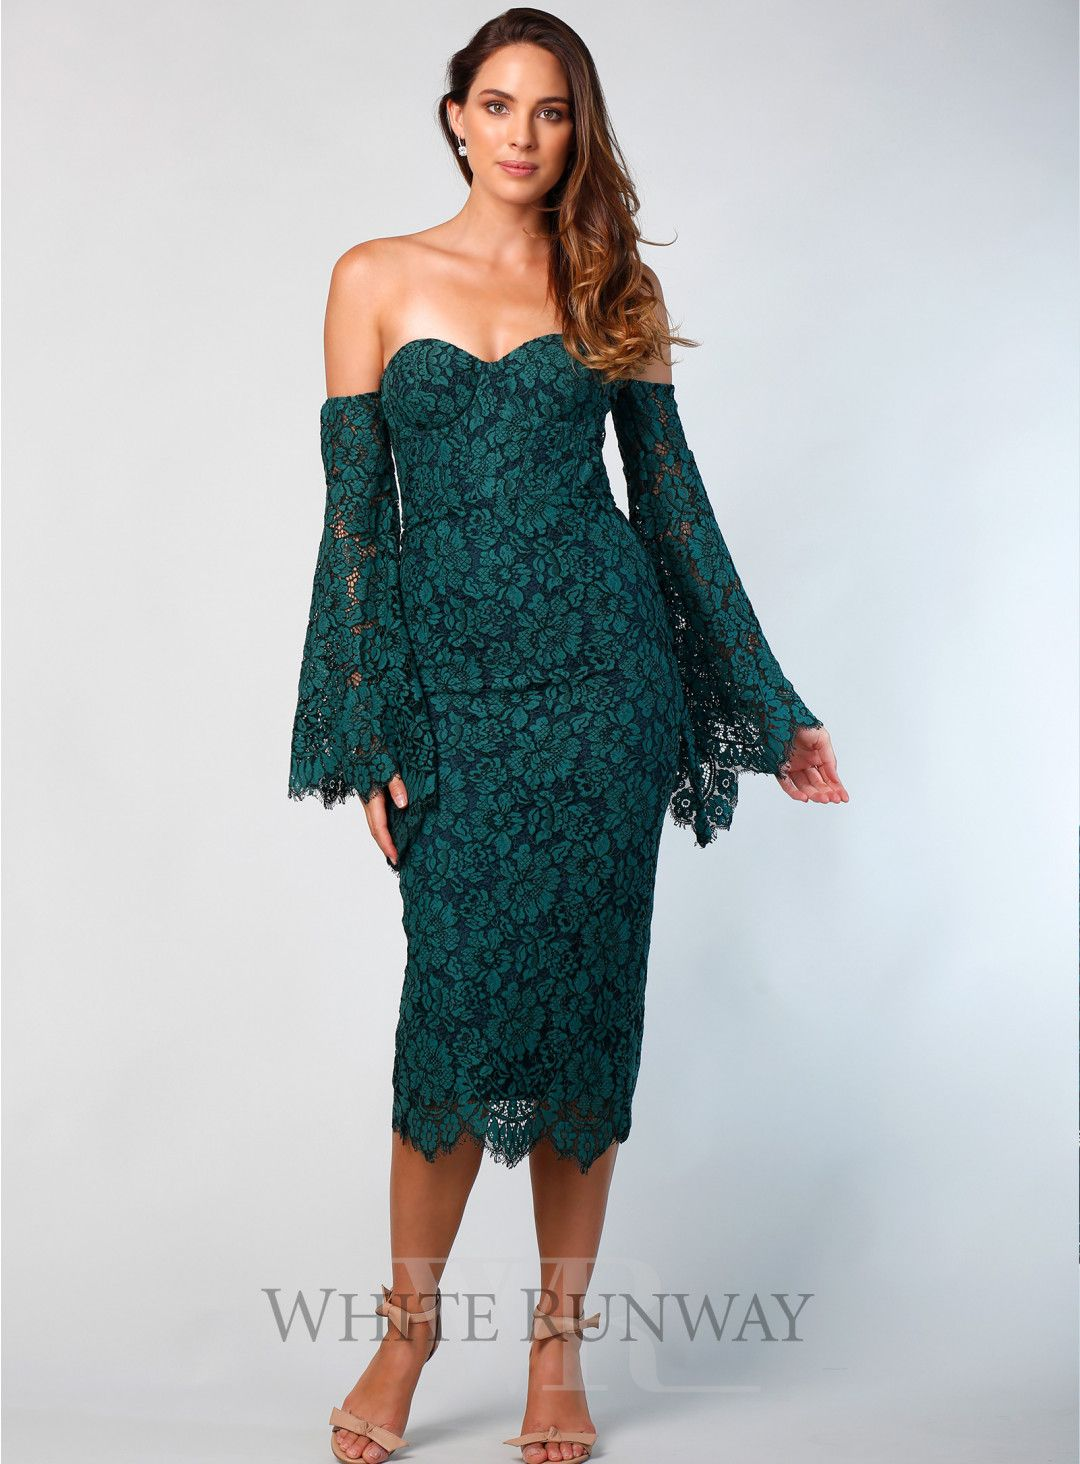 6b4ef565bd7d Forest Heather Dress. A stunning midi dress by Elle Zeitoune. An off  shoulder style featuring scalloped eyelash lace fabric and flared sleeves.